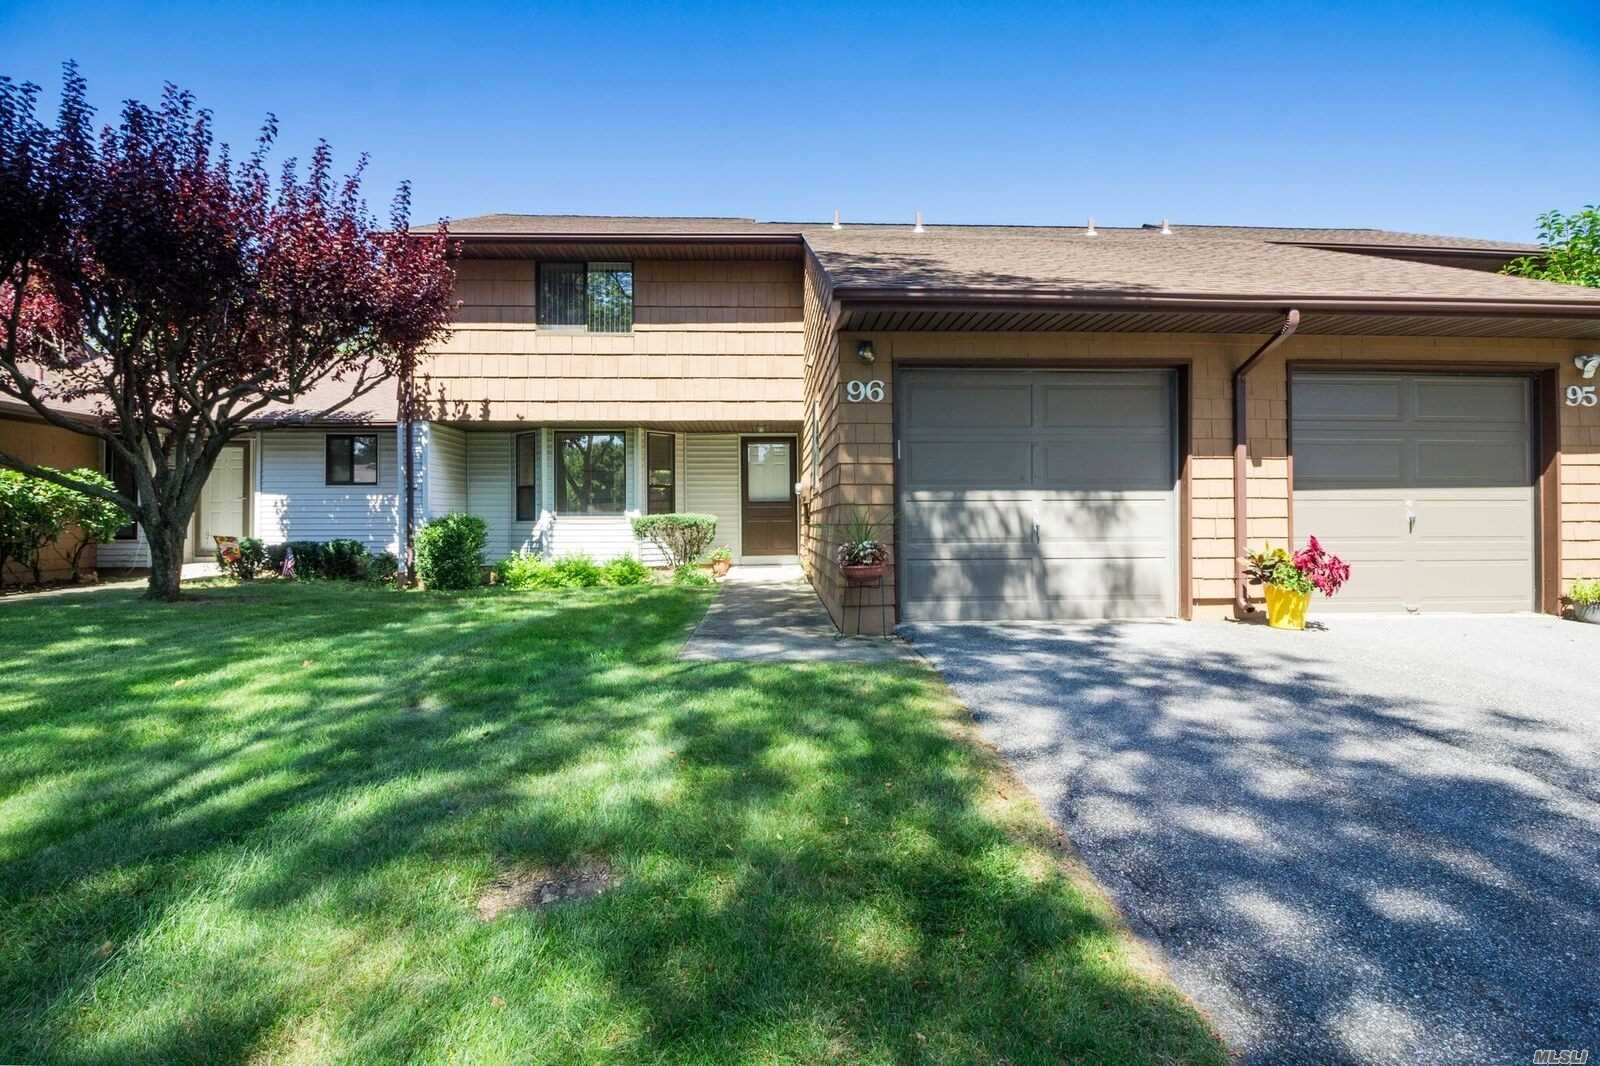 Immaculate Light &Bright 2 Br, 2.5 Bath W/Large Eik, Master Suite W/Tub & Wic, Add'l Br W/Wic, Hi Hats, 1 Car Gar W/Pull Down Attic & Large Window, Private Cul De Sac Location, Private Patio, Tons Of Storage & Closets. Roof Updated. Fantastic Amenities.Convenient To Highways, Public Trans & Shopping. Mostly Original But Very Well Maintained, Make This Your Own! Commack Schools!